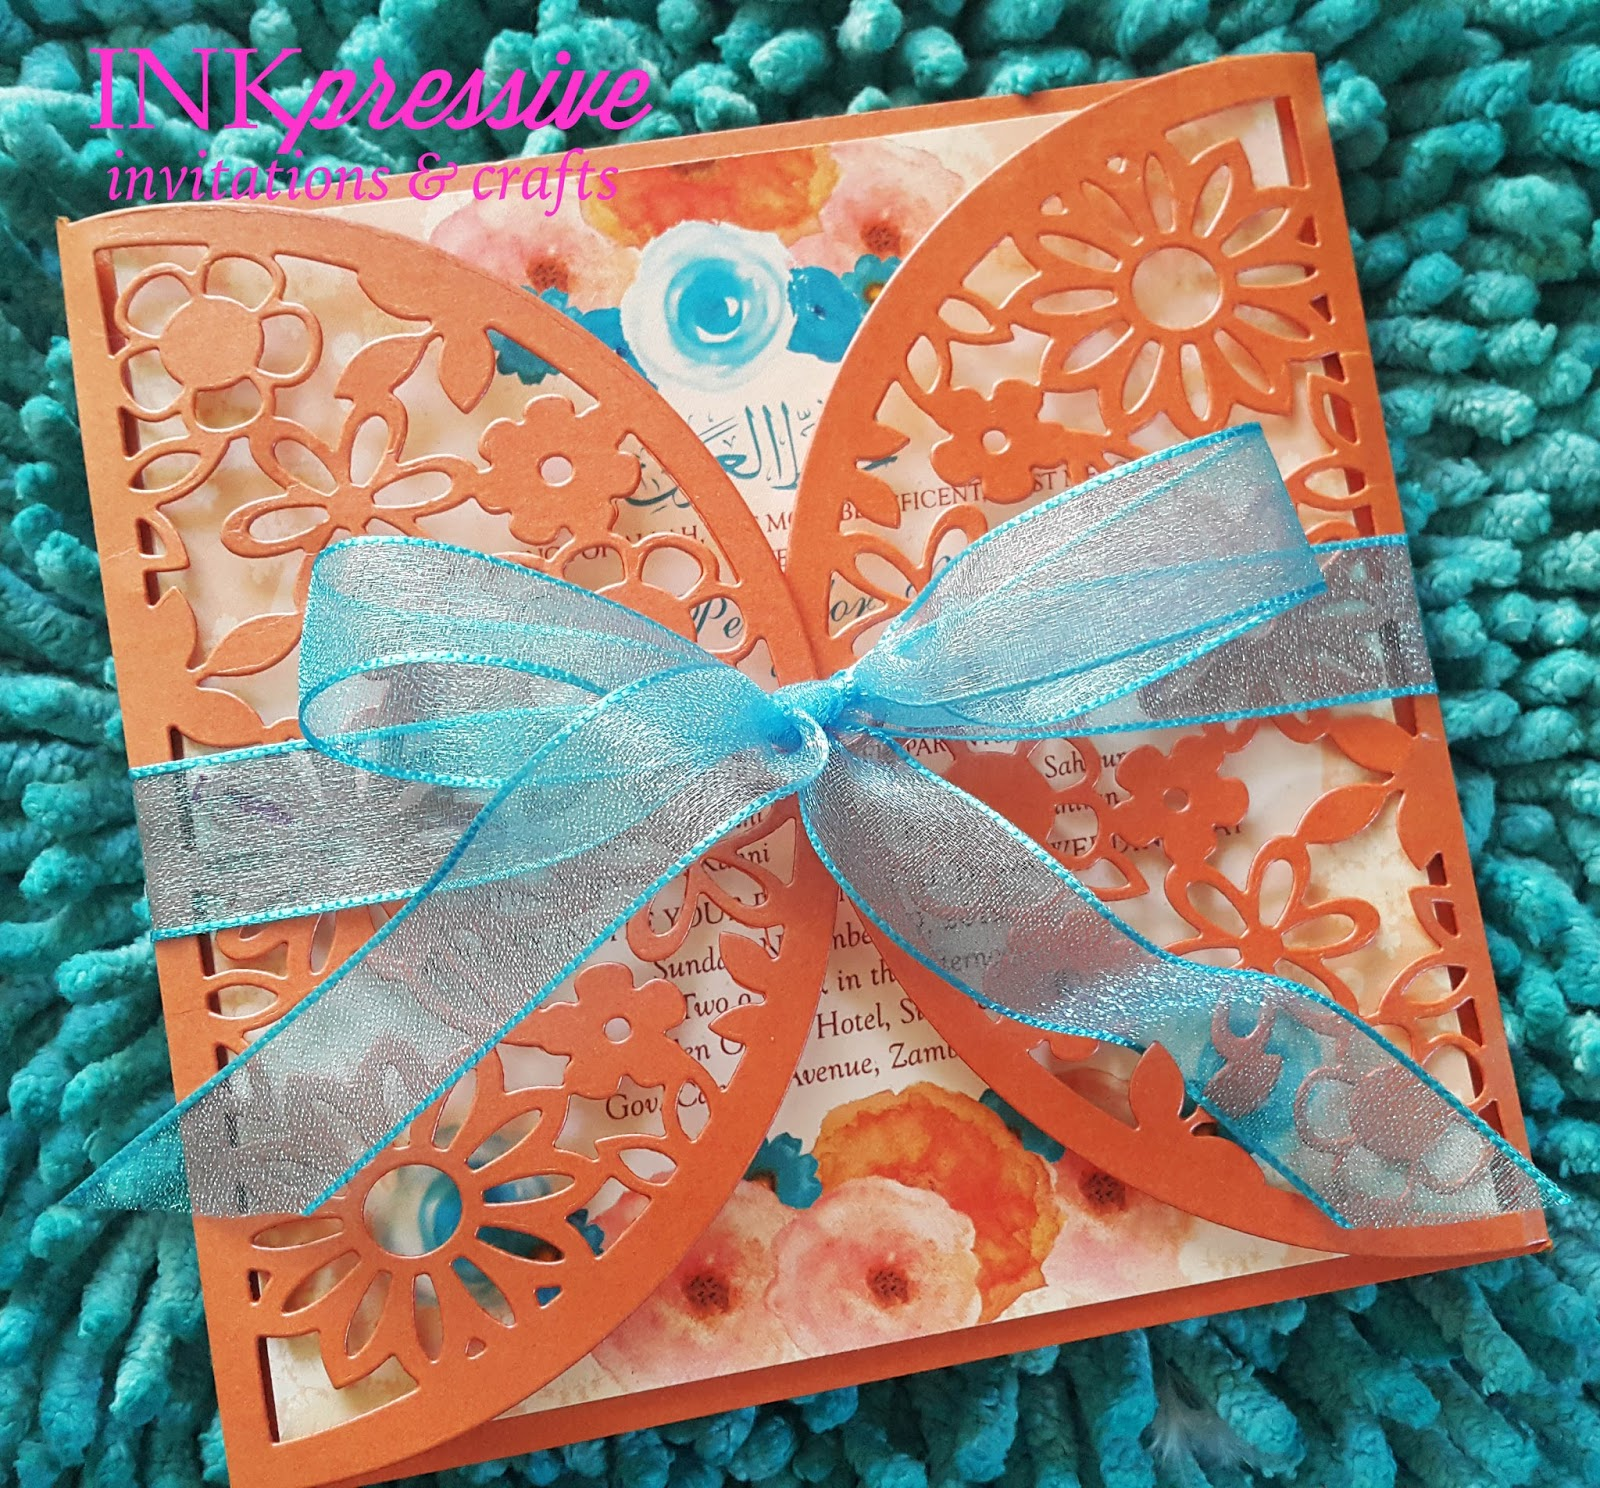 For The Cards They Opted Watercolor Fls And Flower Shower Intricate Cut Envelope In Orange